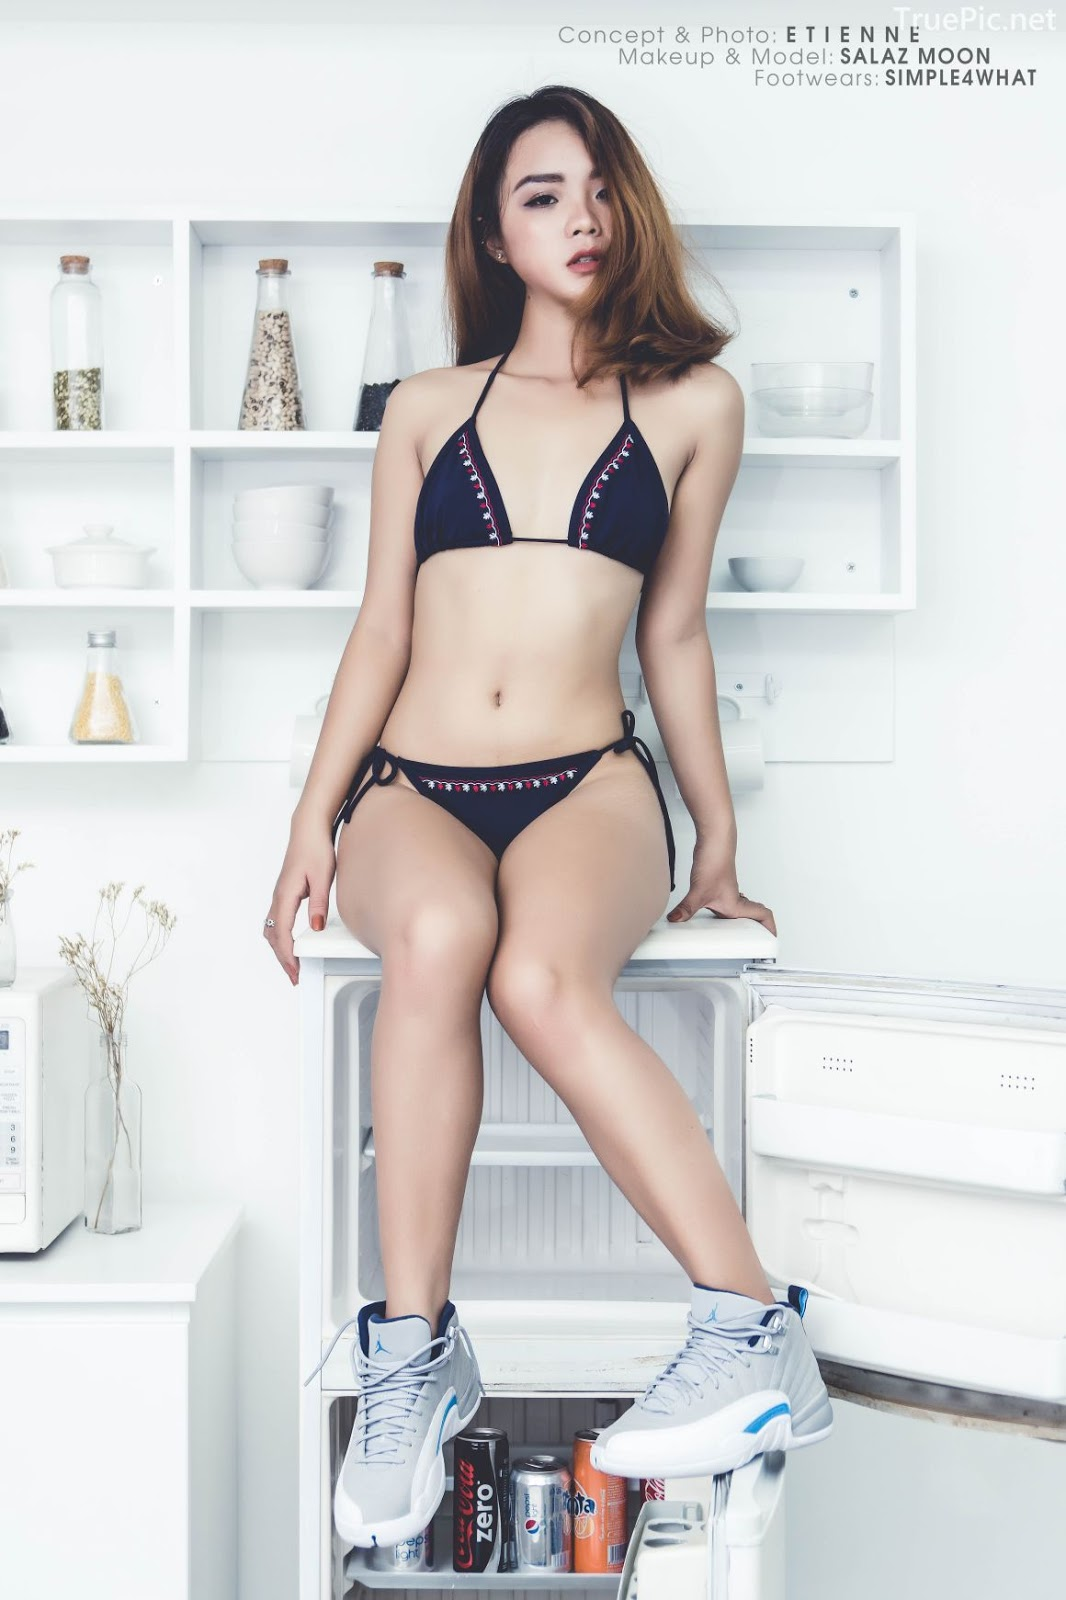 Super hot photos of Vietnamese beauties with lingerie and bikini - Photo by Le Blanc Studio - Part 1 - Picture 2